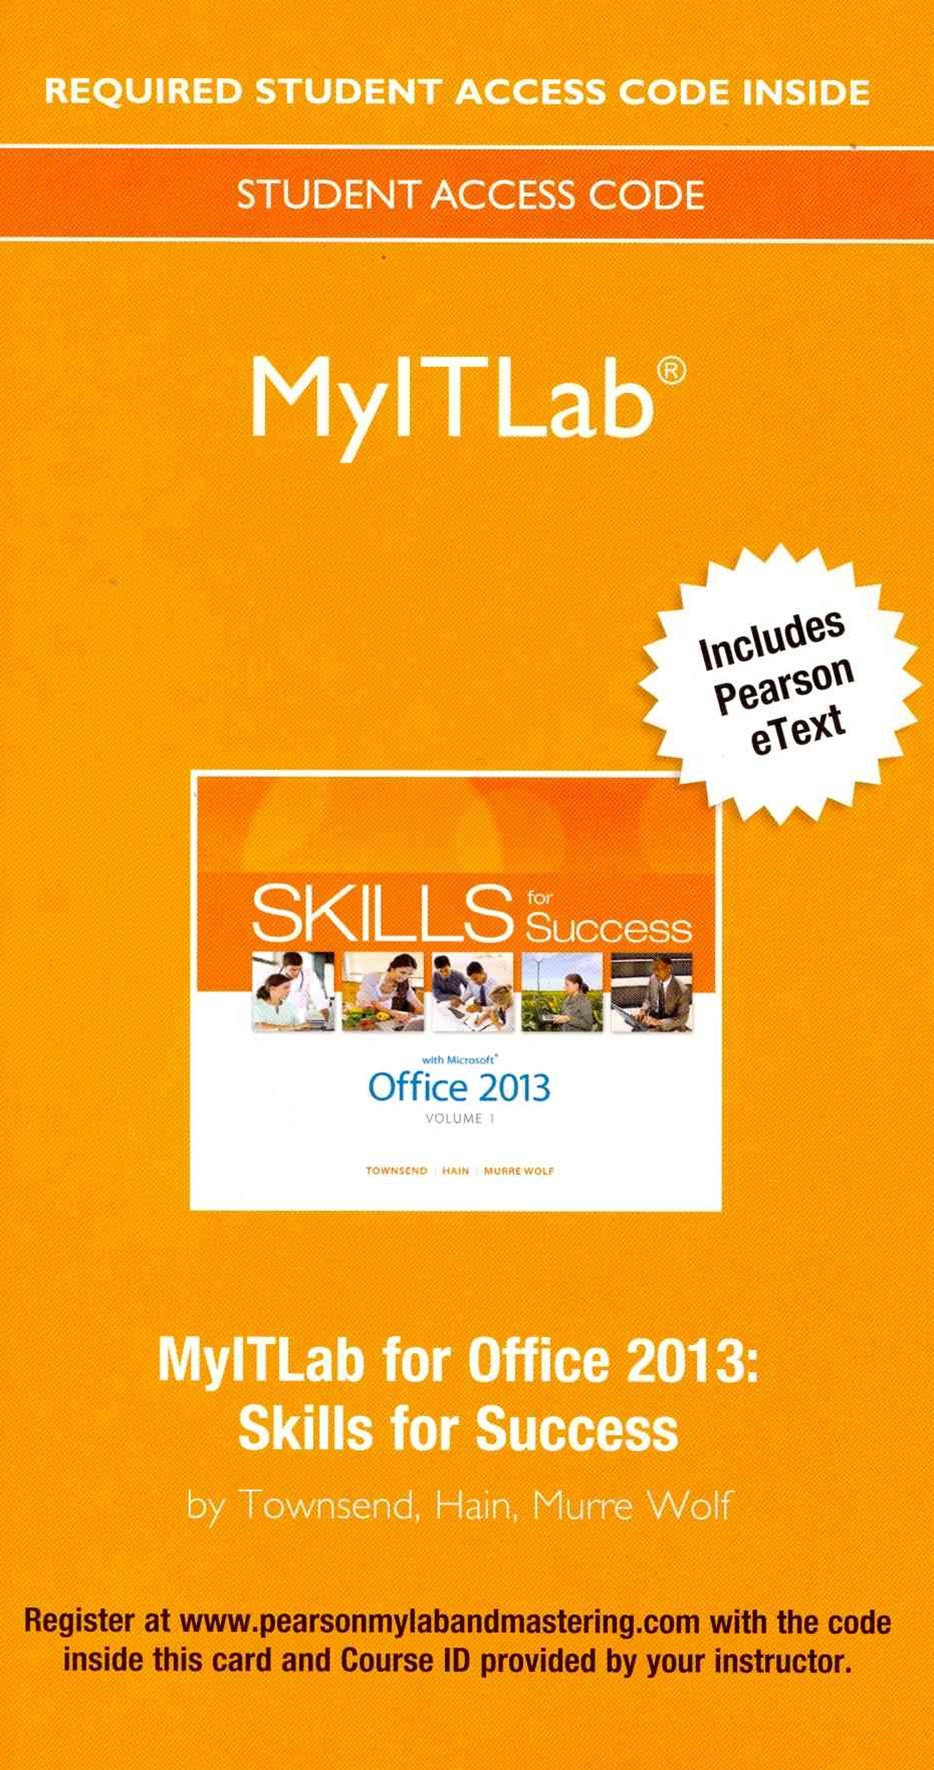 Skills for Success with Office 2013